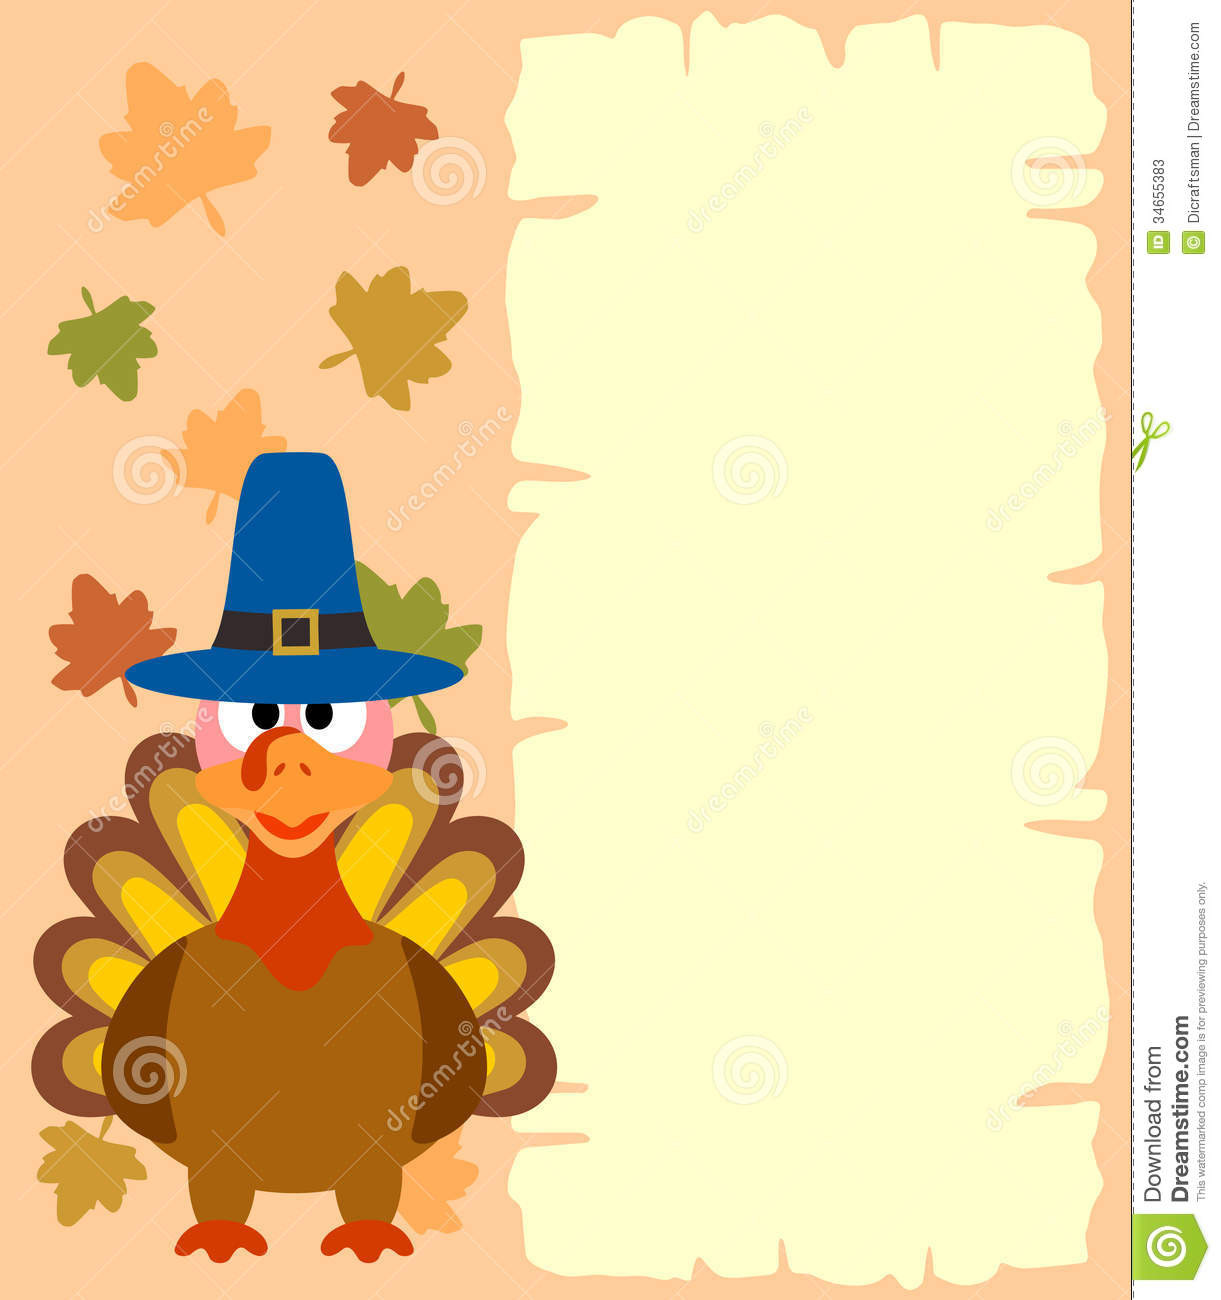 Thanksgiving Turkey Background  Thanksgiving Background With Turkey Stock Vector